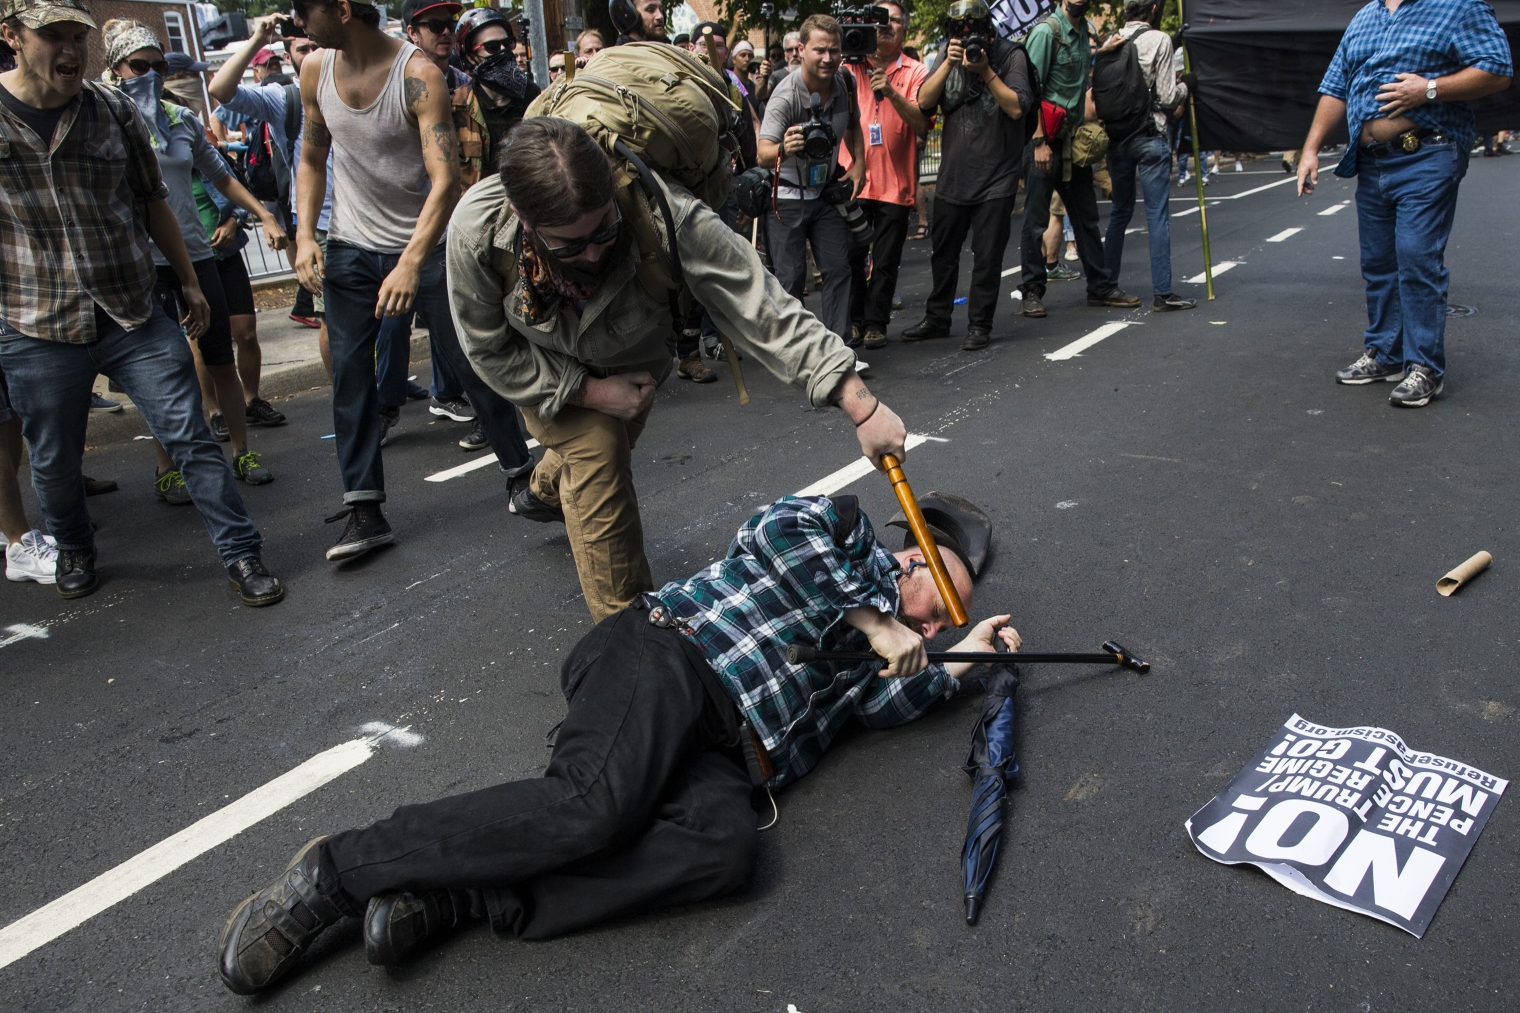 A counter-protester strikes a white nationalist with a baton during clashes surrounding a rally protesting the removal of the Robert E. Lee monument in Charlottesville, Va., on Aug. 12, 2017.